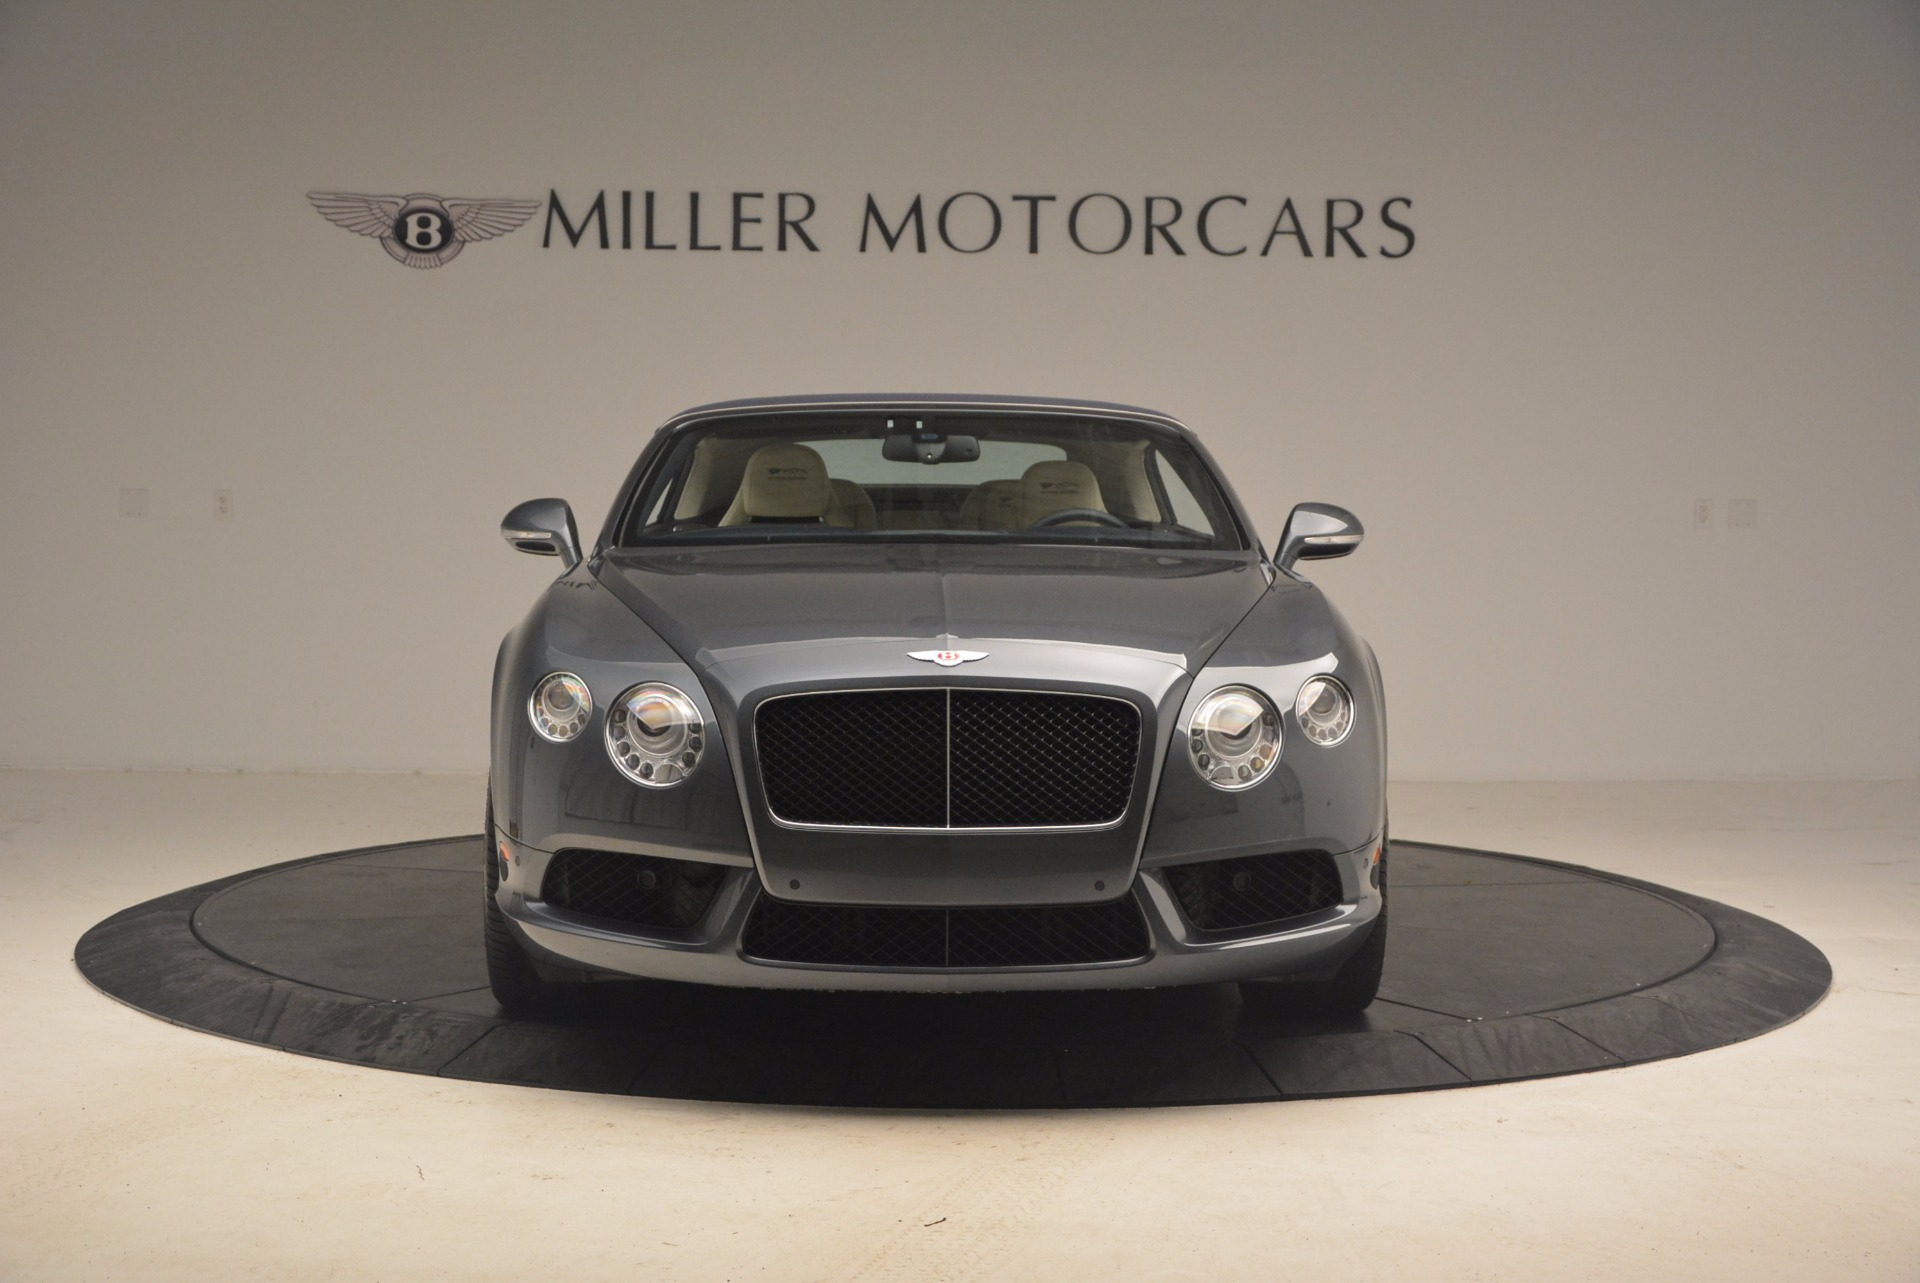 Used 2013 Bentley Continental GT V8 Le Mans Edition, 1 of 48 For Sale In Westport, CT 1288_p13